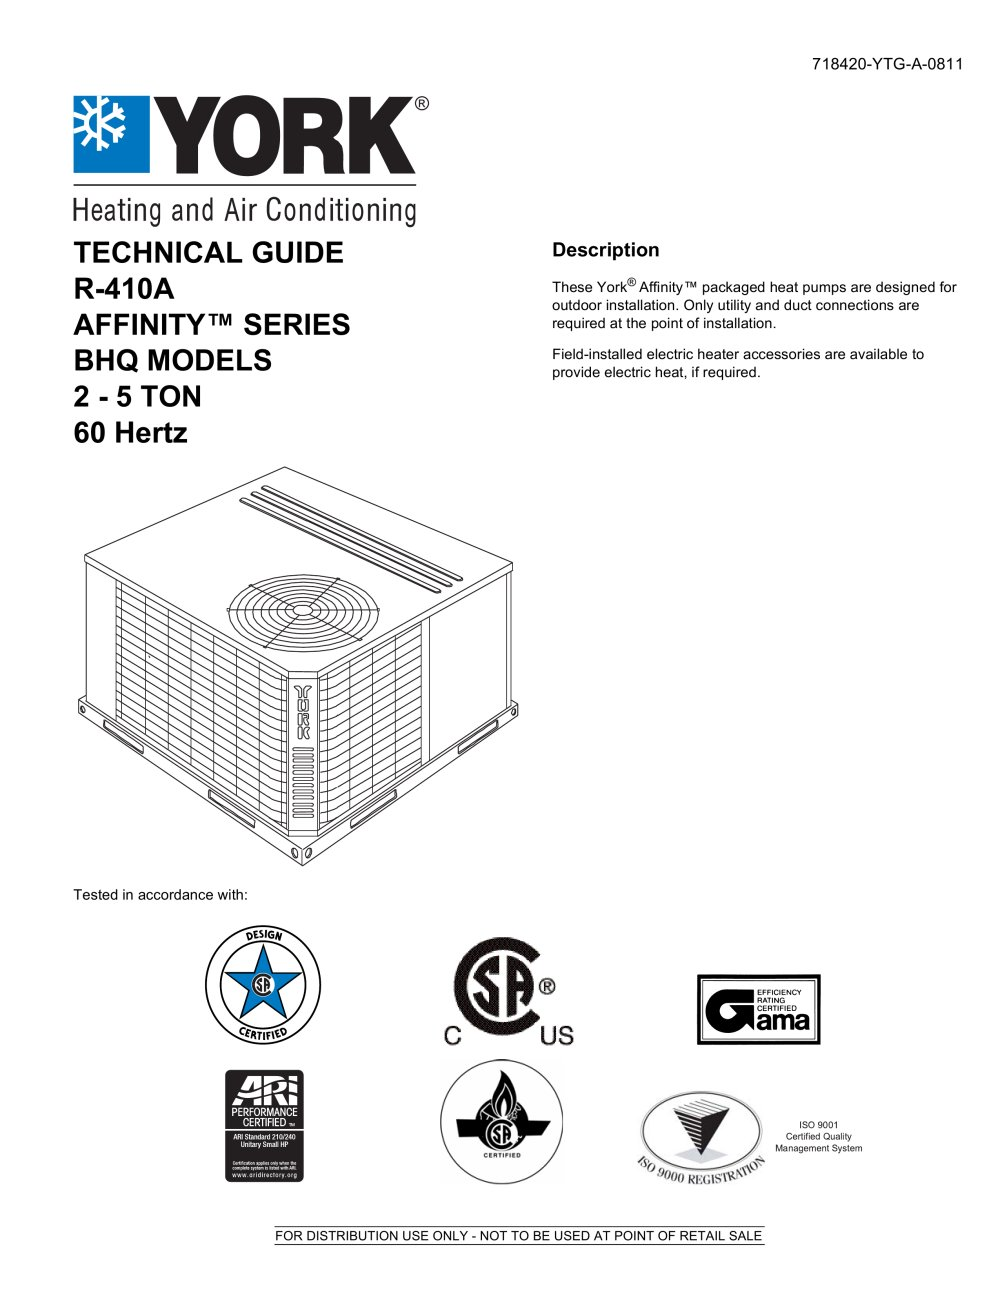 BHQ024 - 060 Affinity? R-410A Single Package Heat Pumps (Wichita Built) - 1  / 42 Pages